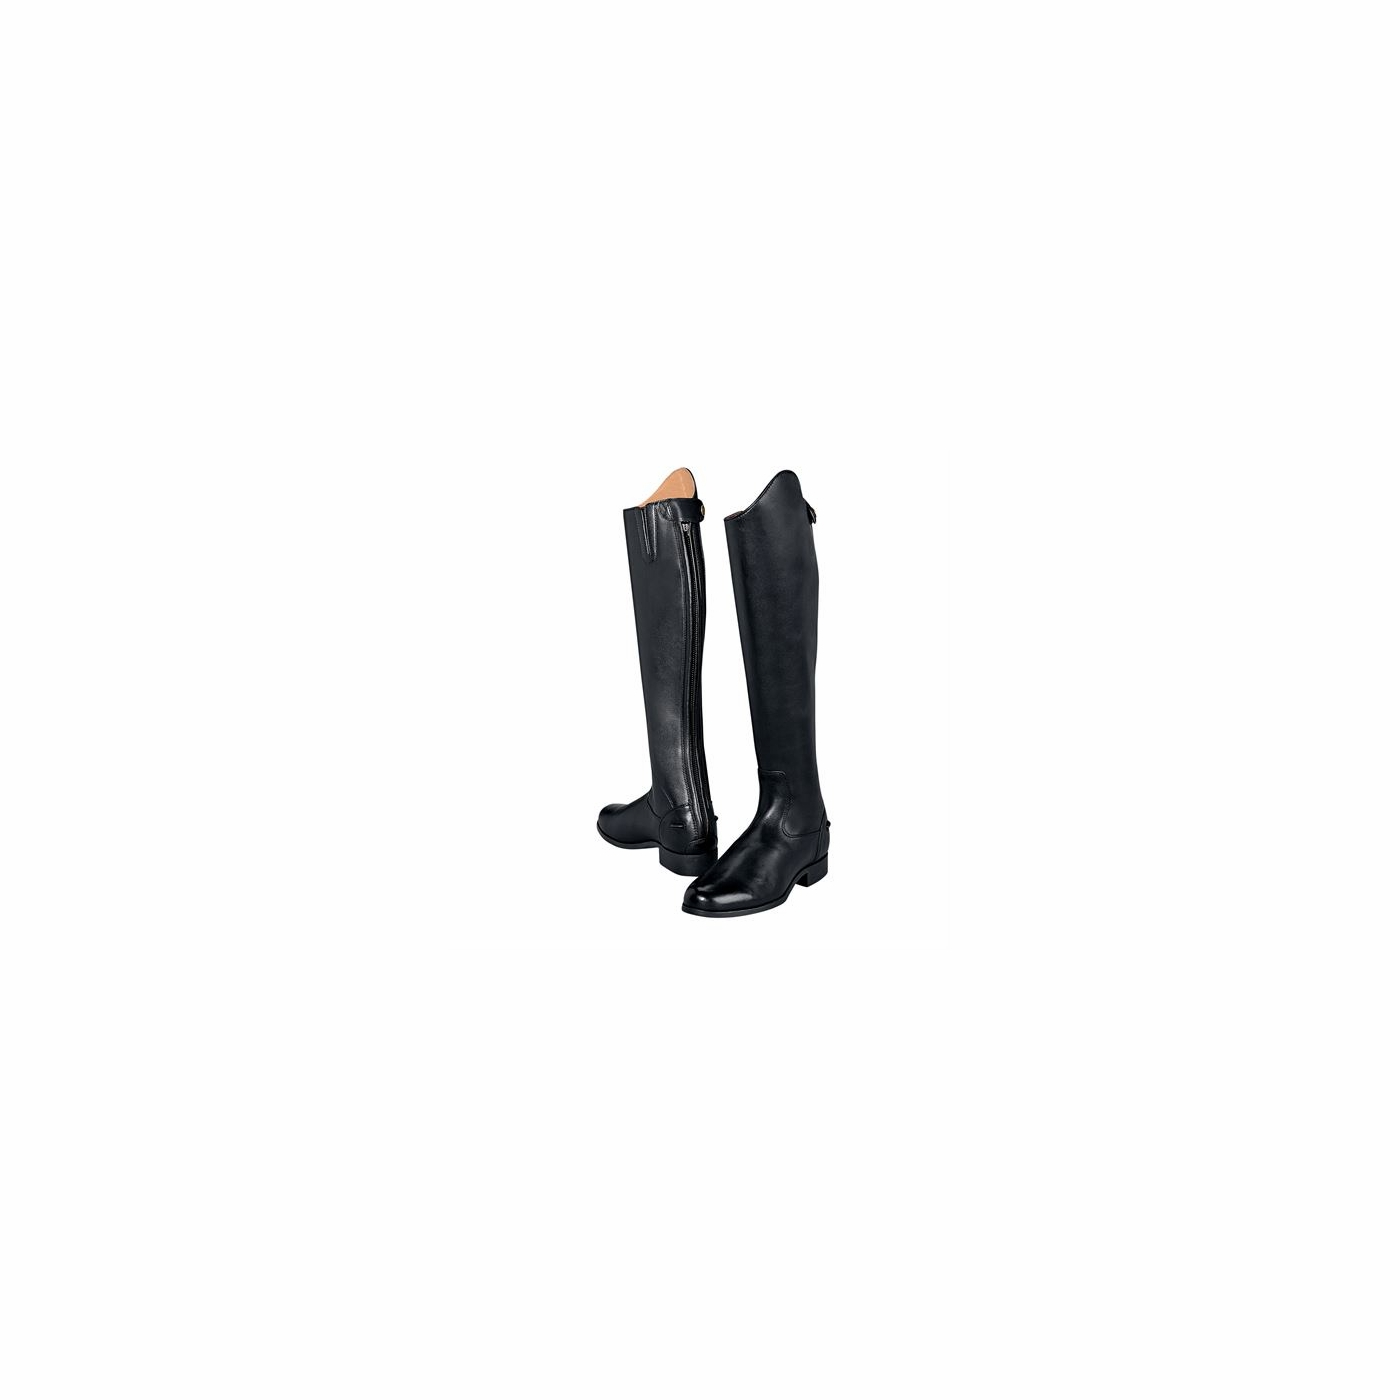 7a92bff4939 Ariat Heritage Contour Dress Boots *Discontinued*